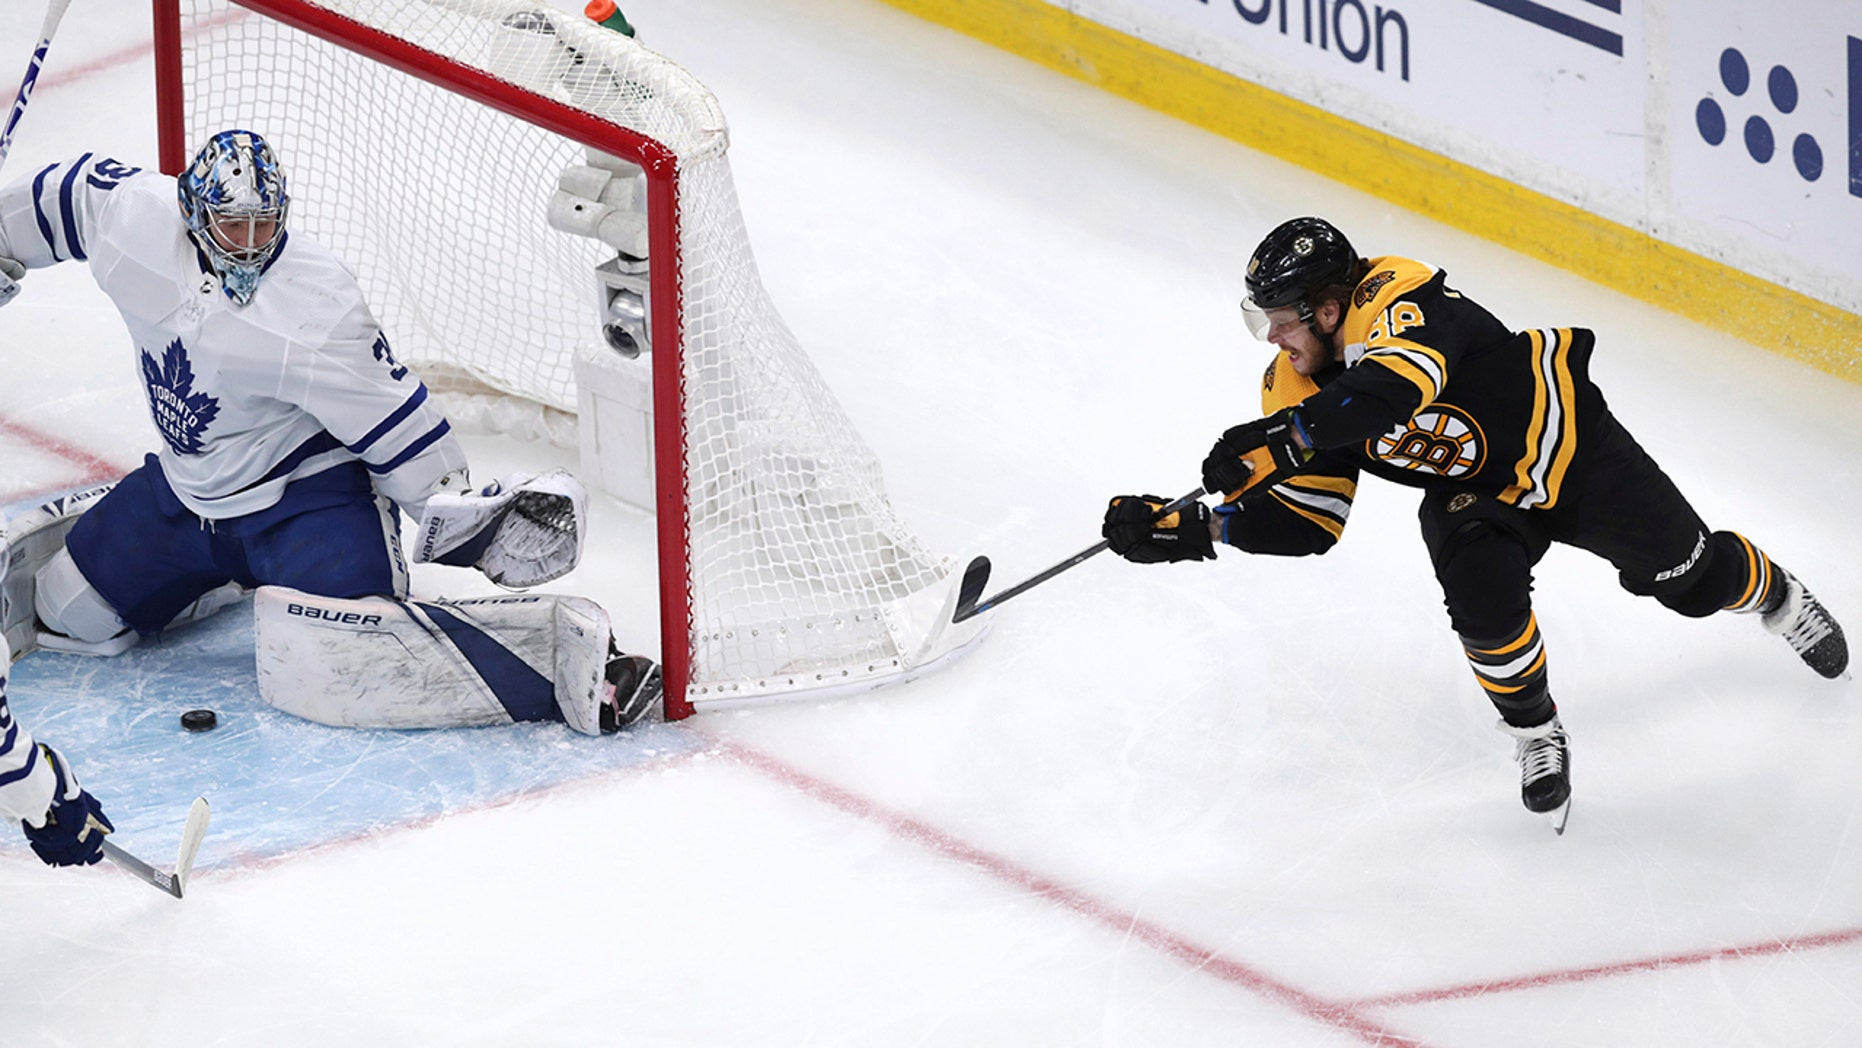 Westlake Legal Group NHL-David-Pastrnak2 Boston Bruins star David Pastrnak takes shot at Justin Bieber after win over Toronto Maple Leafs Ryan Gaydos fox-news/sports/stanley-cup-playoffs fox-news/sports/nhl/toronto-maple-leafs fox-news/sports/nhl/boston-bruins fox-news/sports/nhl fox-news/person/justin-bieber fox news fnc/sports fnc cd7db372-71f4-5d47-8012-169f24feda32 article